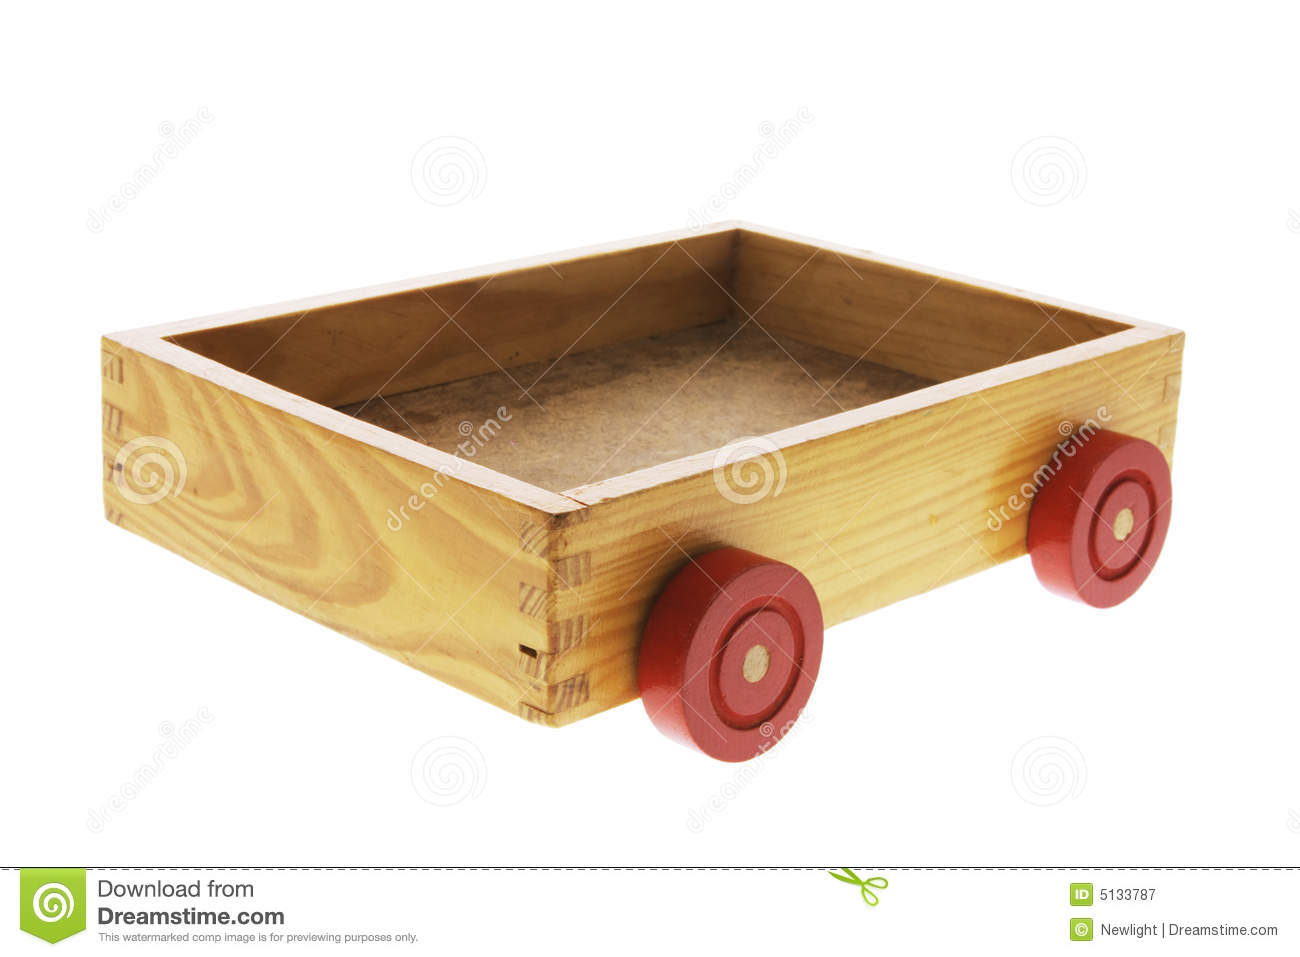 Wooden Box With Wheels Royalty Free Stock Photography - Image: 5133787